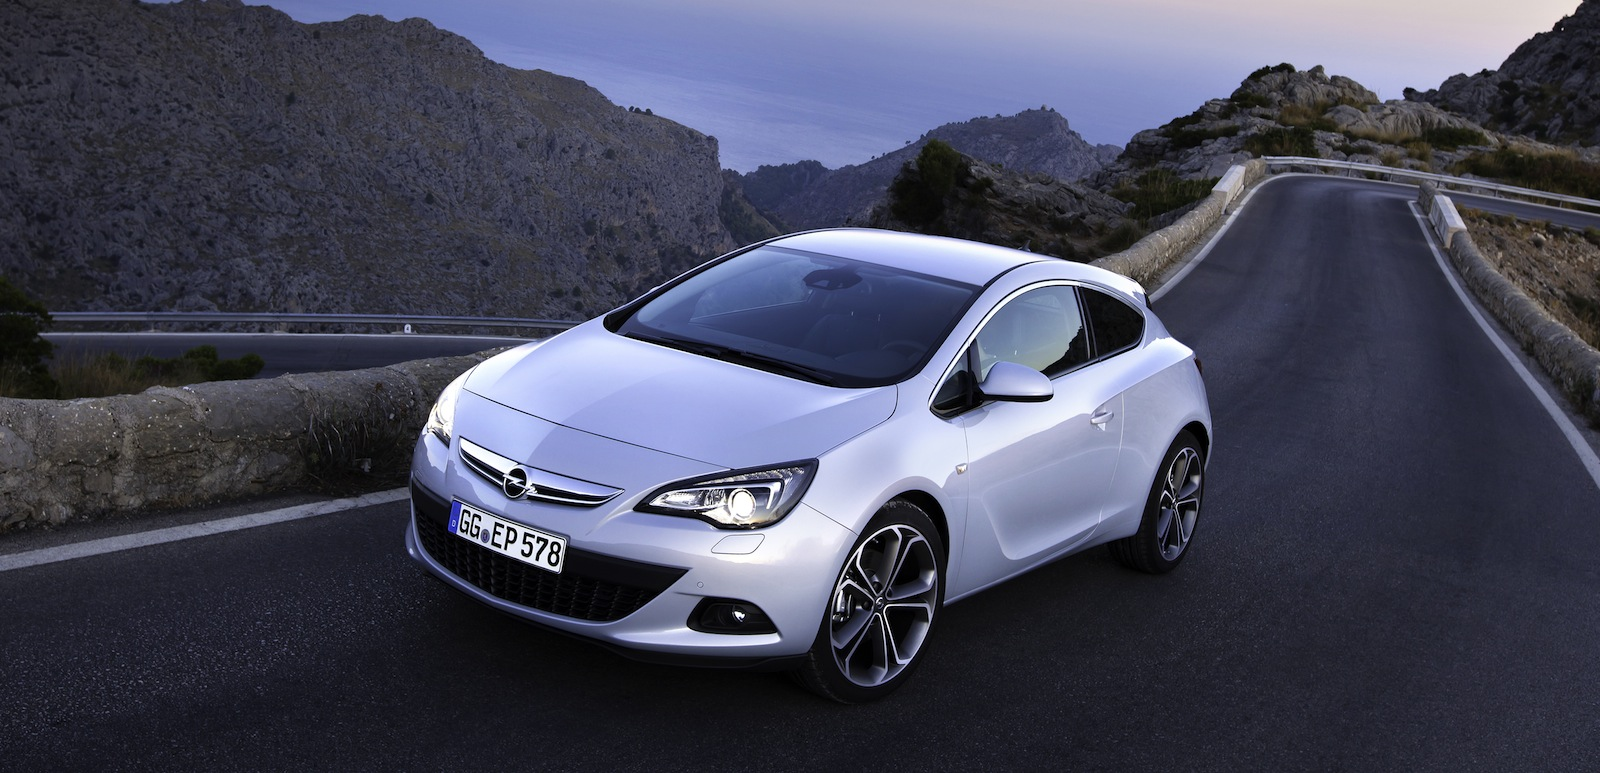 opel astra gtc new 1 6 litre turbo petrol here next month photos caradvice. Black Bedroom Furniture Sets. Home Design Ideas